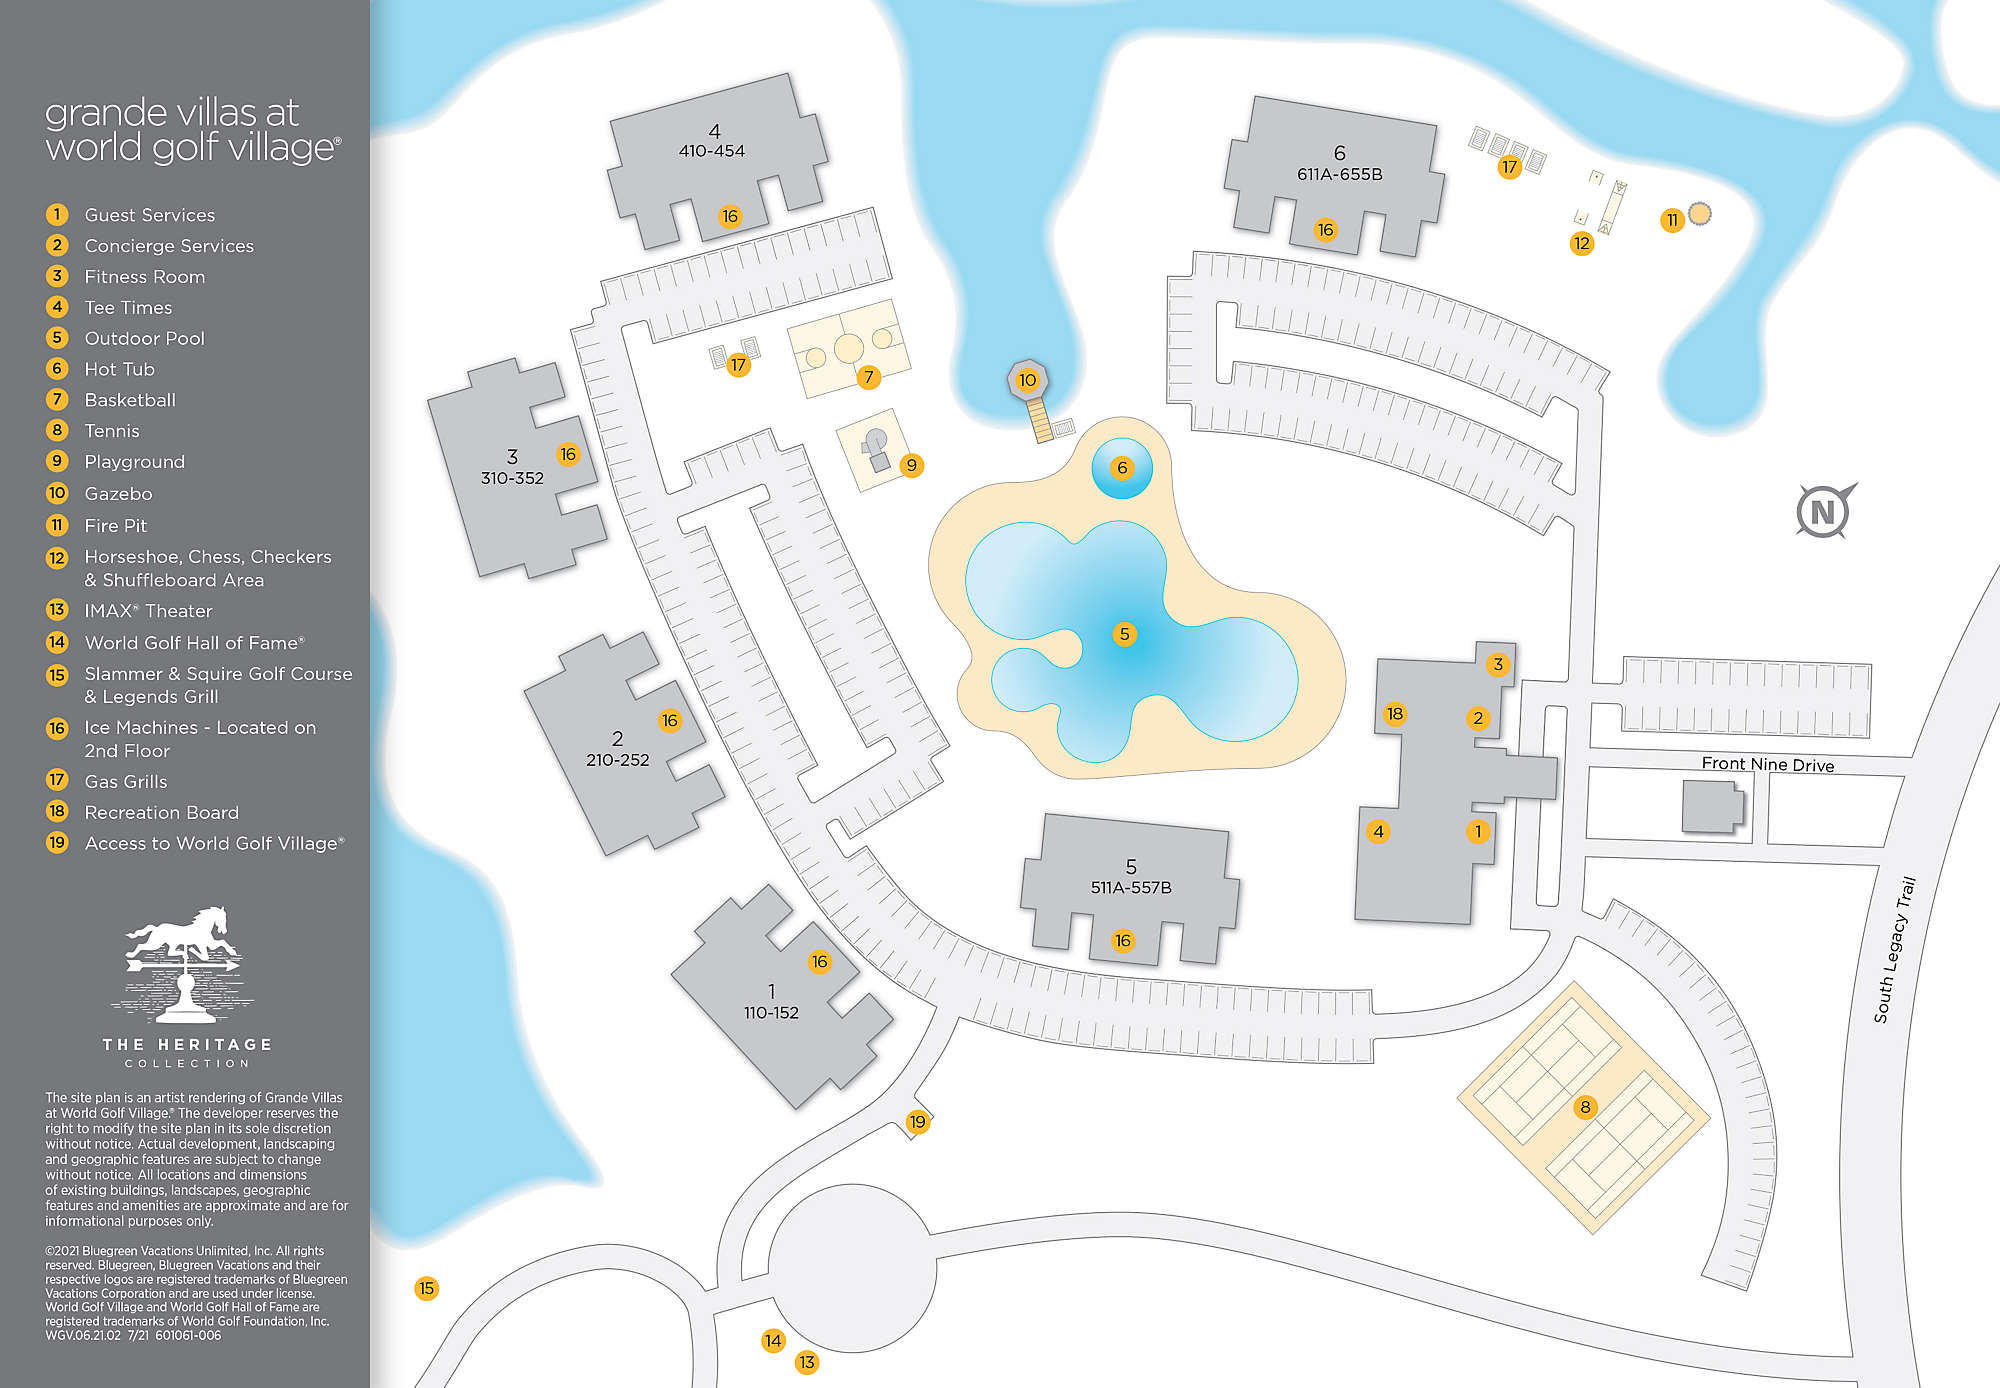 Grande Villas at World Golf Village® Site Map